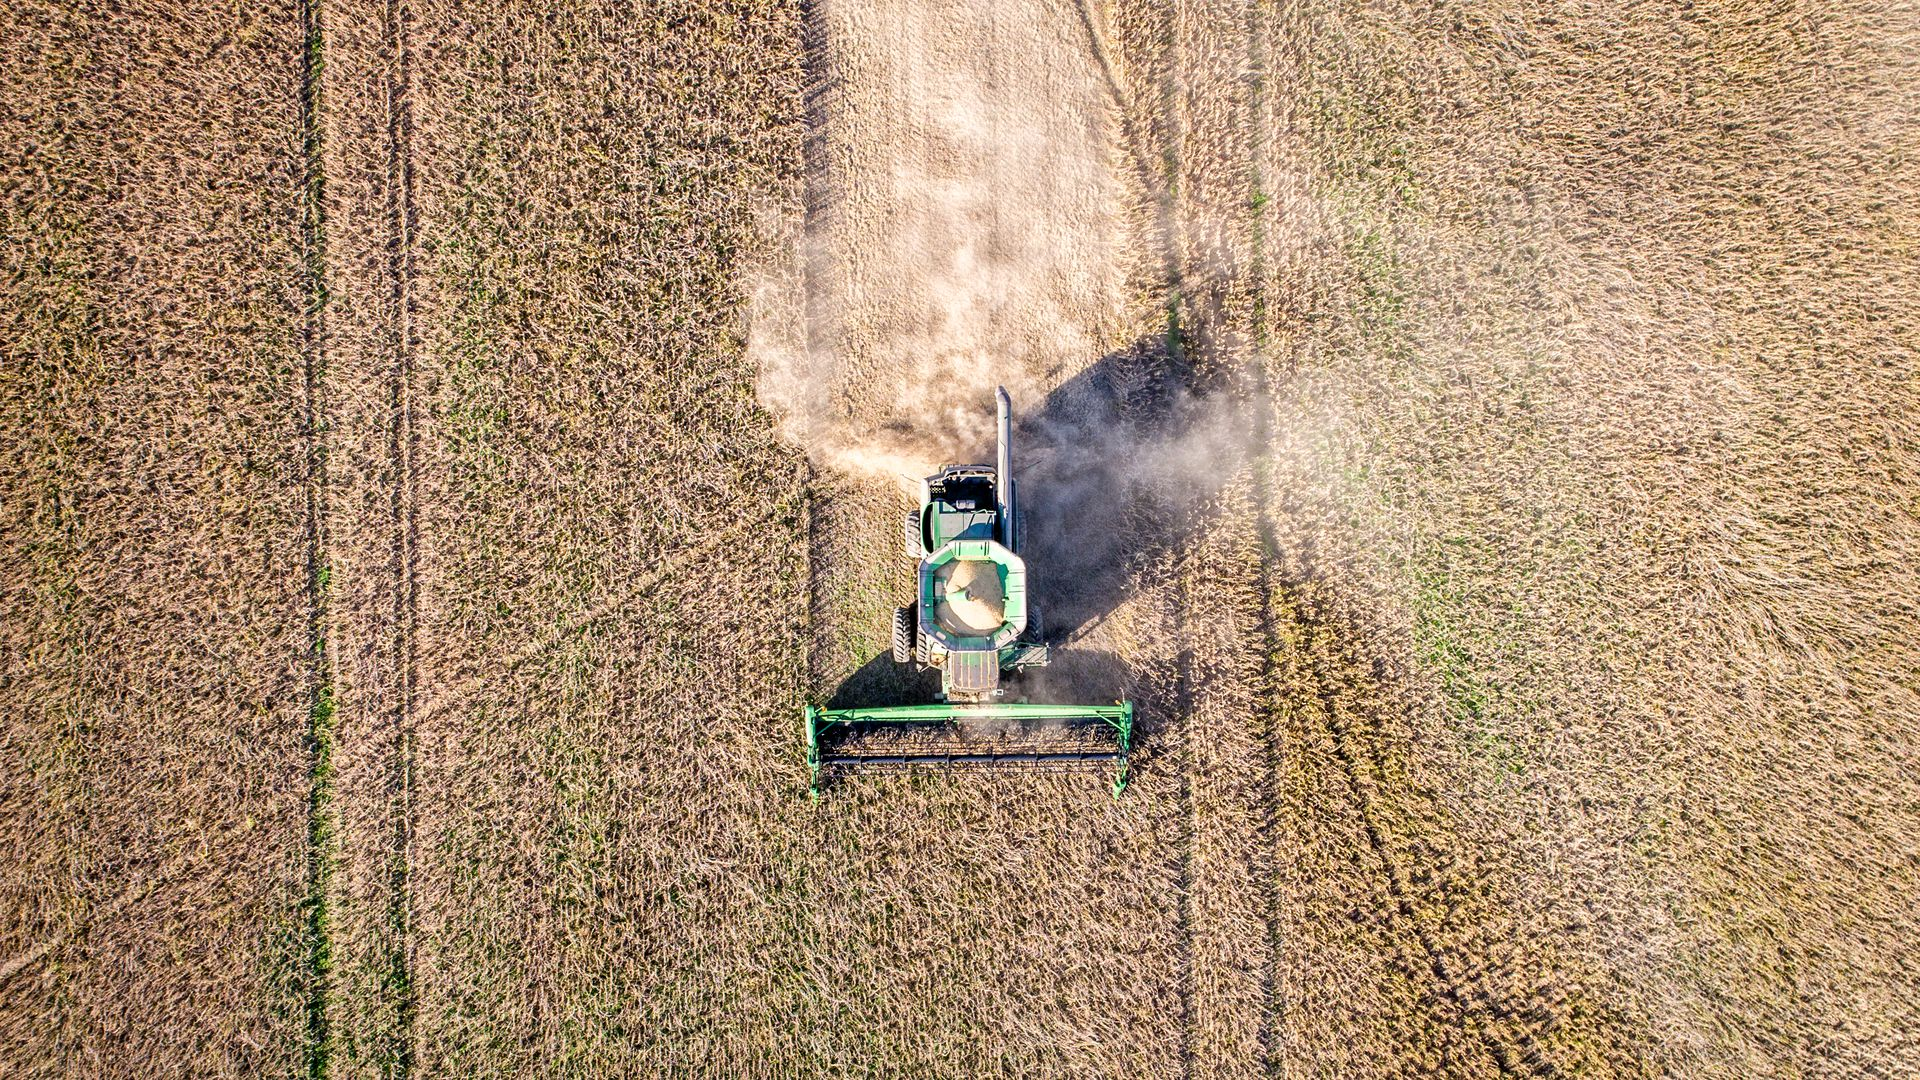 Aerial view looking directly down at a combine harvester driving through rows of soybeans and kicking up dust, Maryland. (Photo by: Edwin Remsberg / VWPics/Universal Images Group via Getty Images)